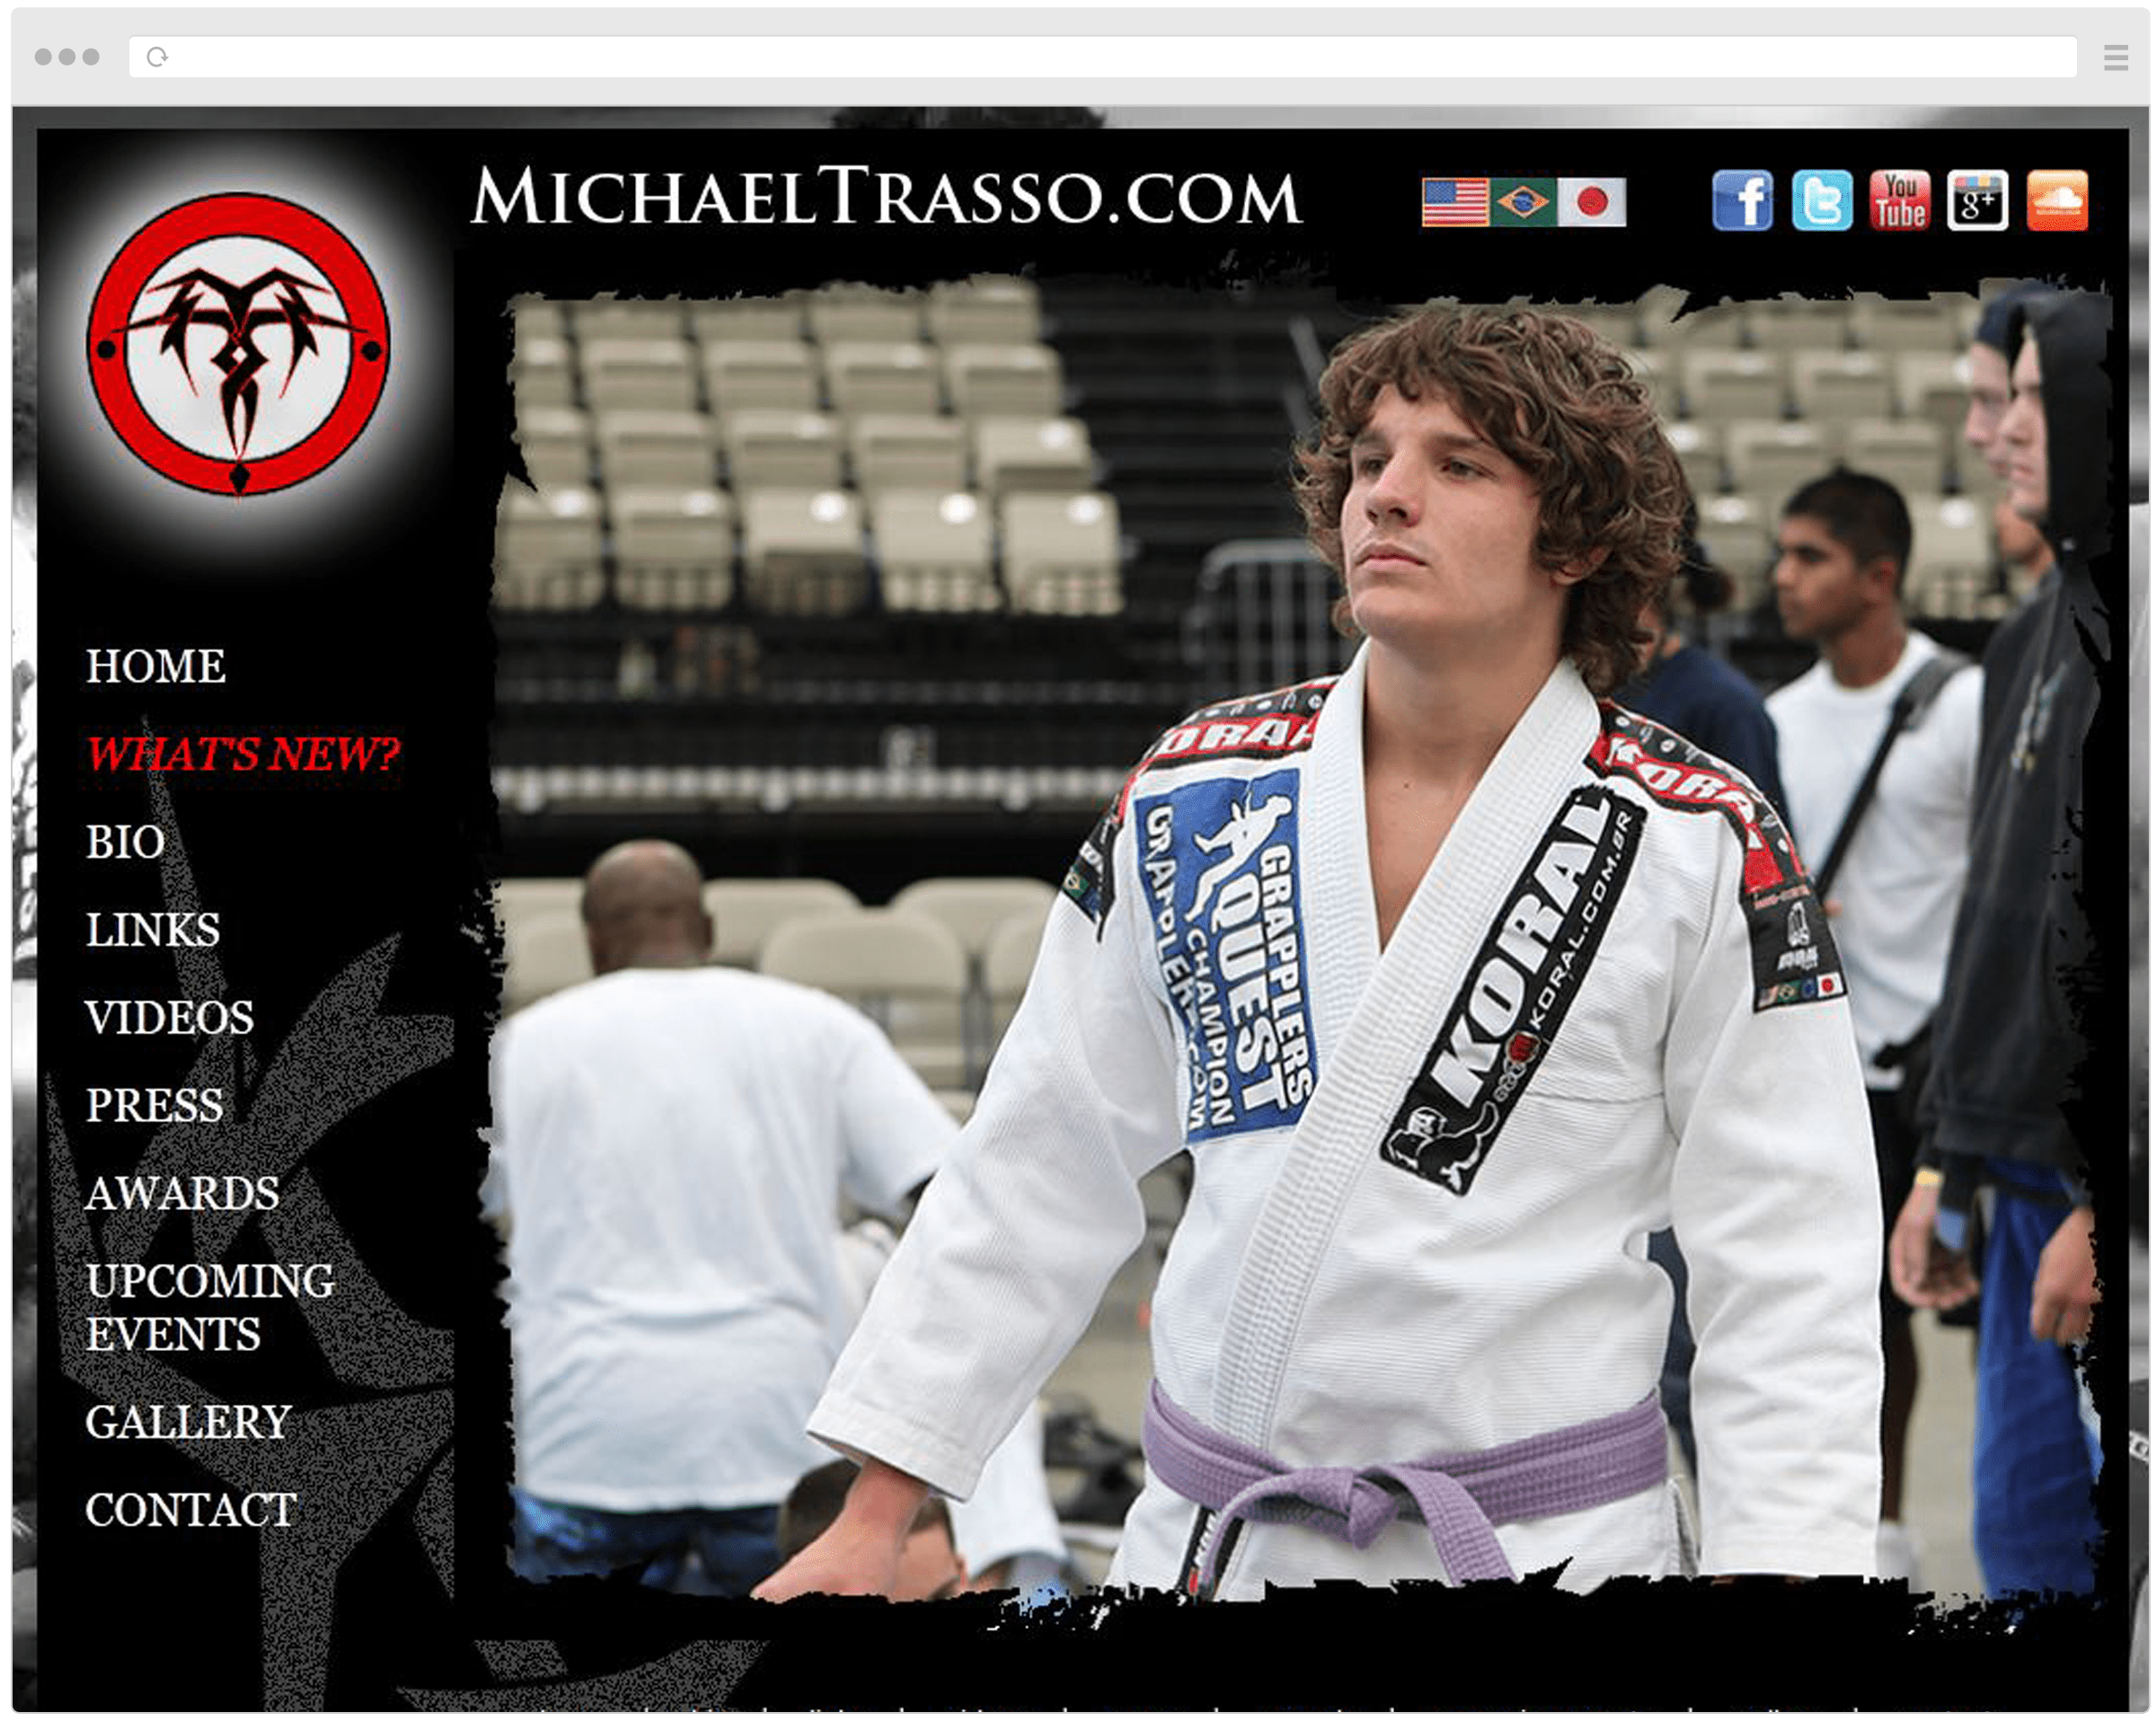 Michael Trasso Old Website